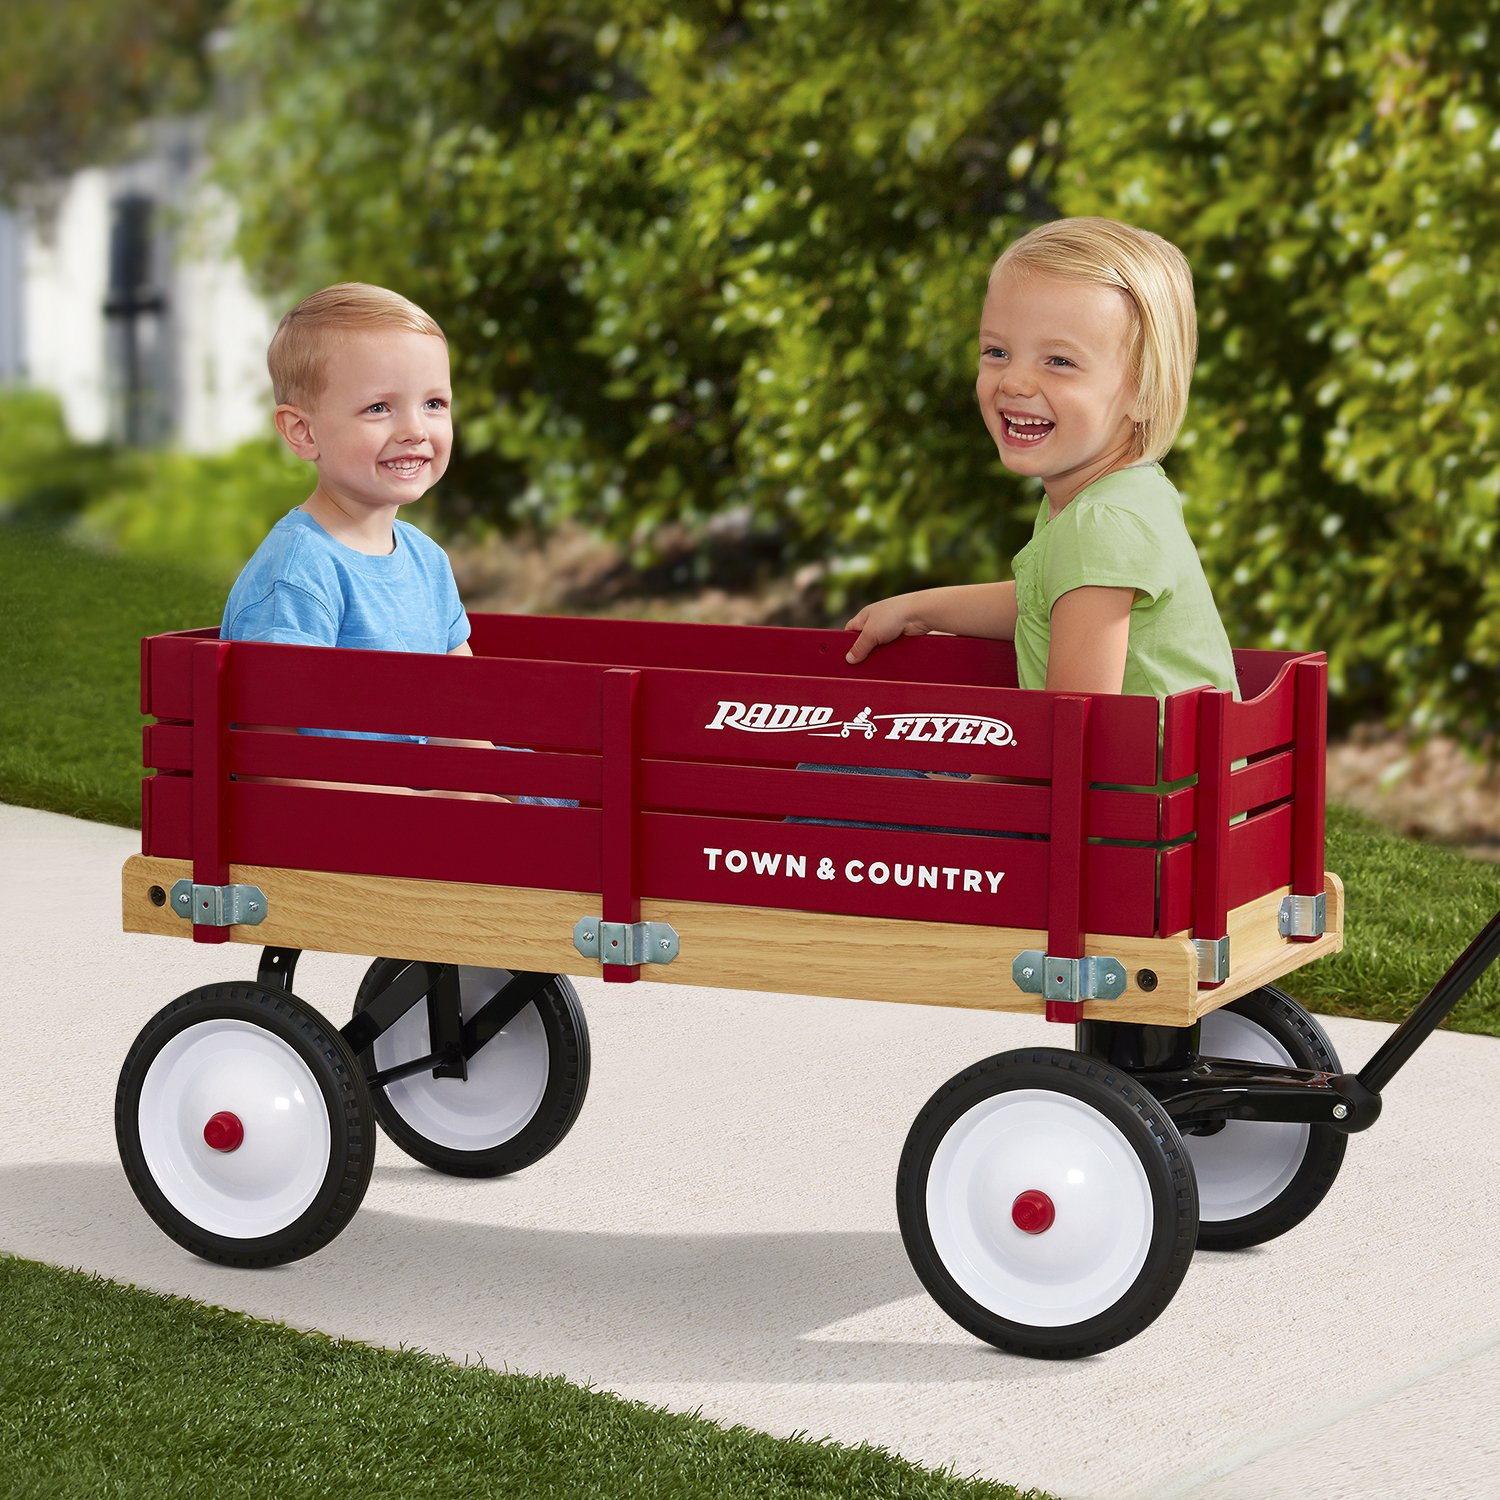 Radio Flyer Town and Country Wagon by Radio Flyer (Image #8)